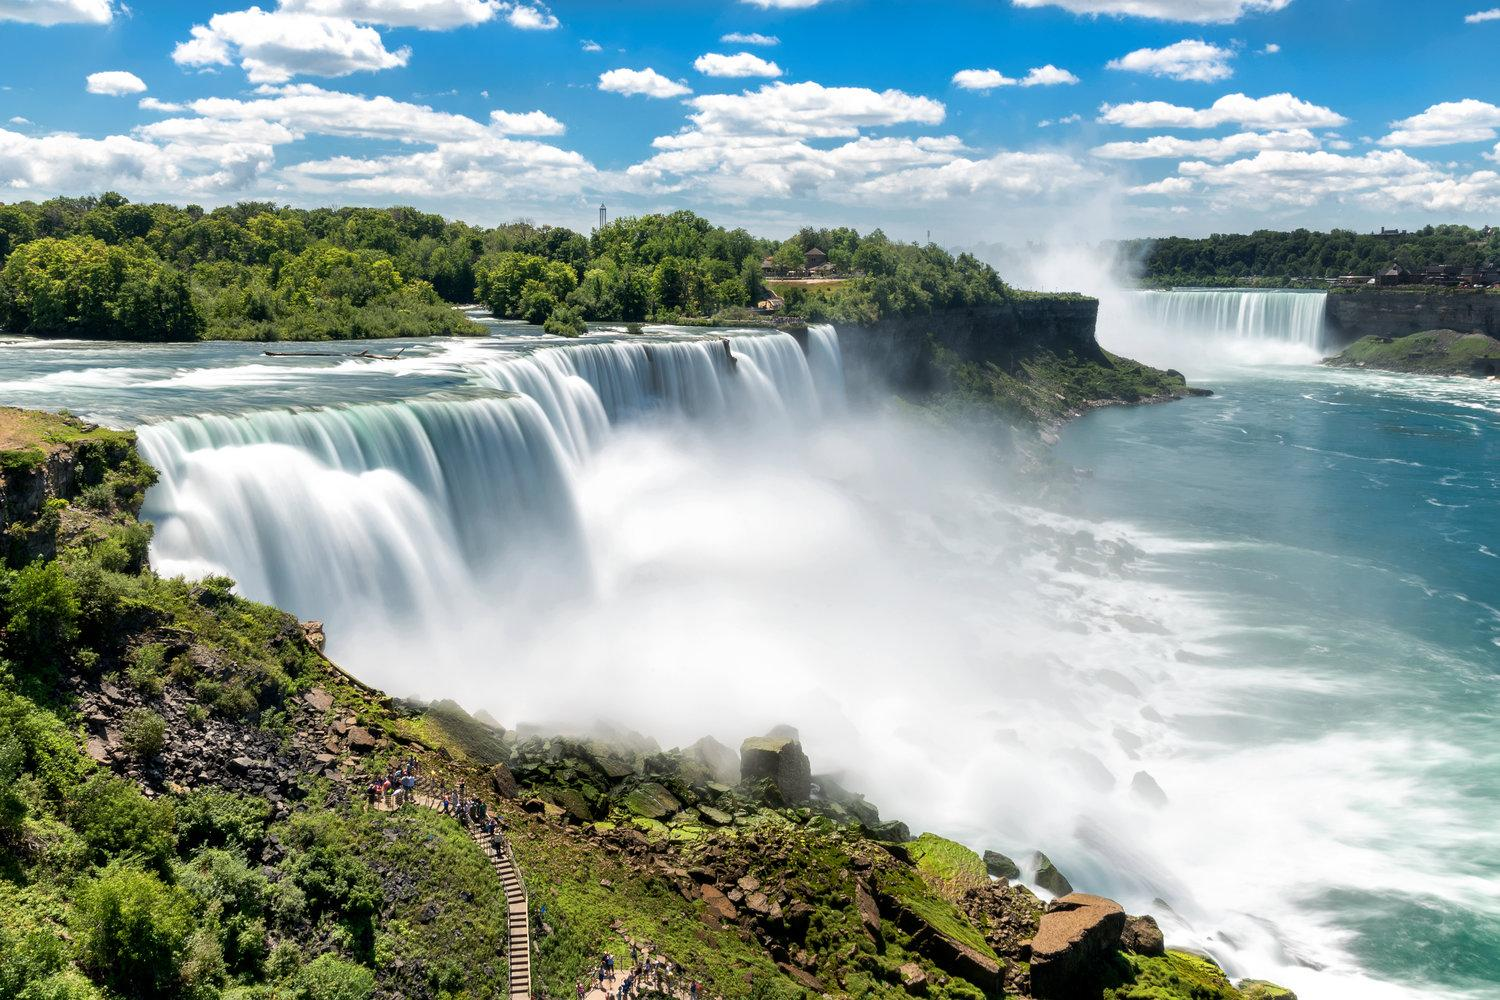 Discover Niagara Falls, one of the world's most spectacular natural wonders